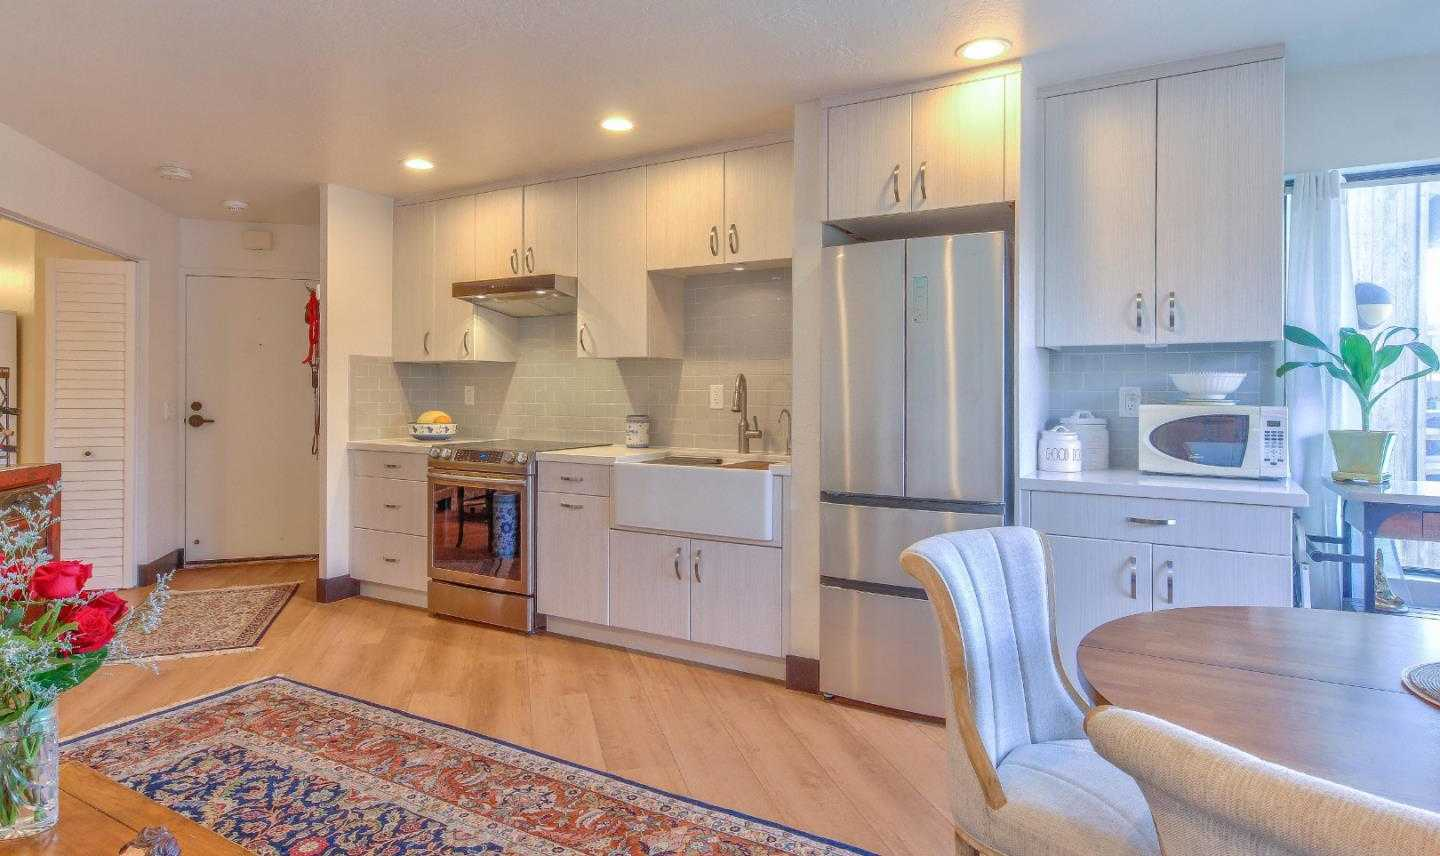 $475,000 - 1Br/1Ba -  for Sale in Monterey